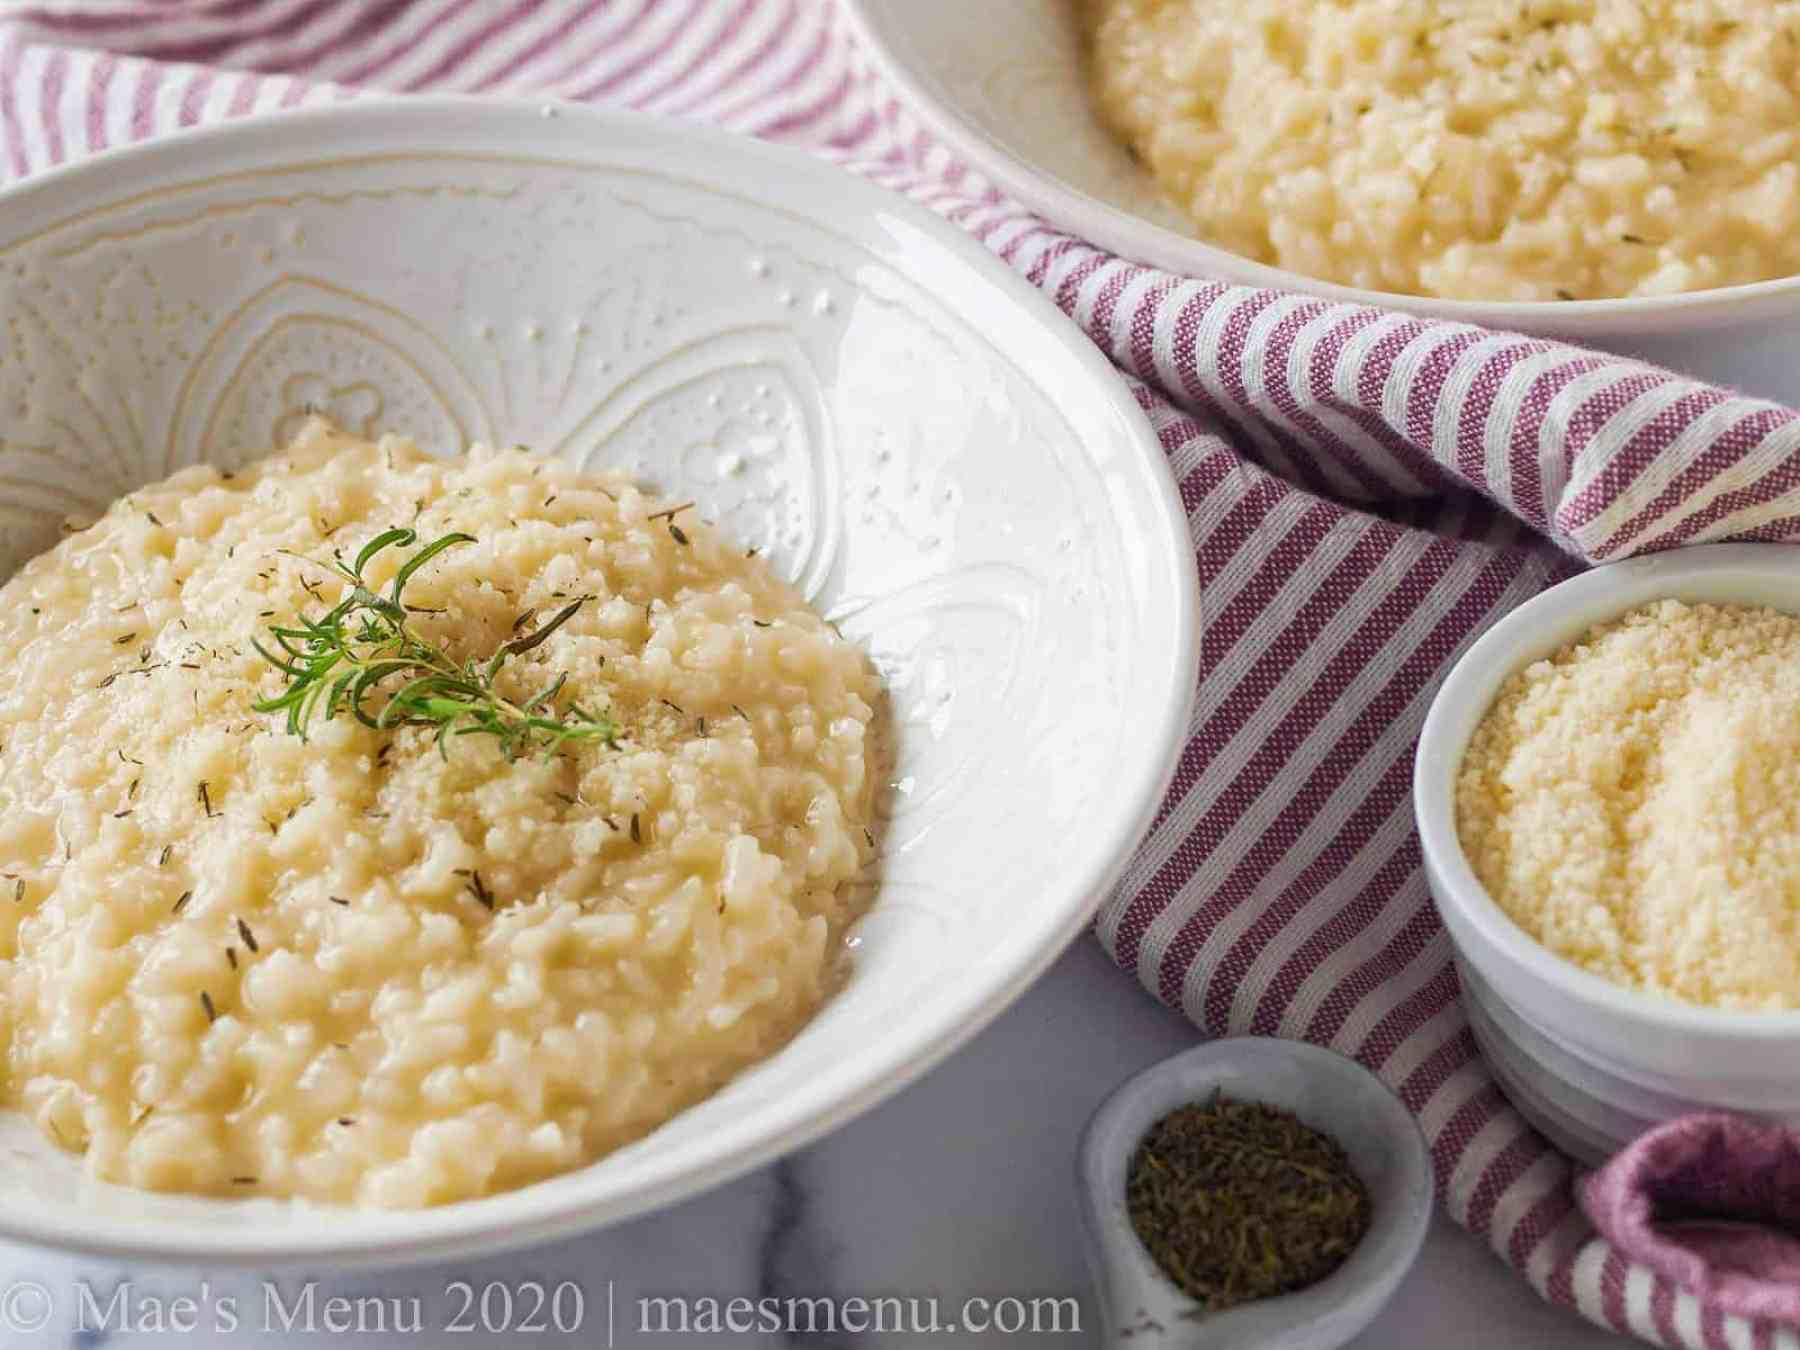 Two white bowls of risotto next to a cup of parmesan cheese and a spoonful of herbs